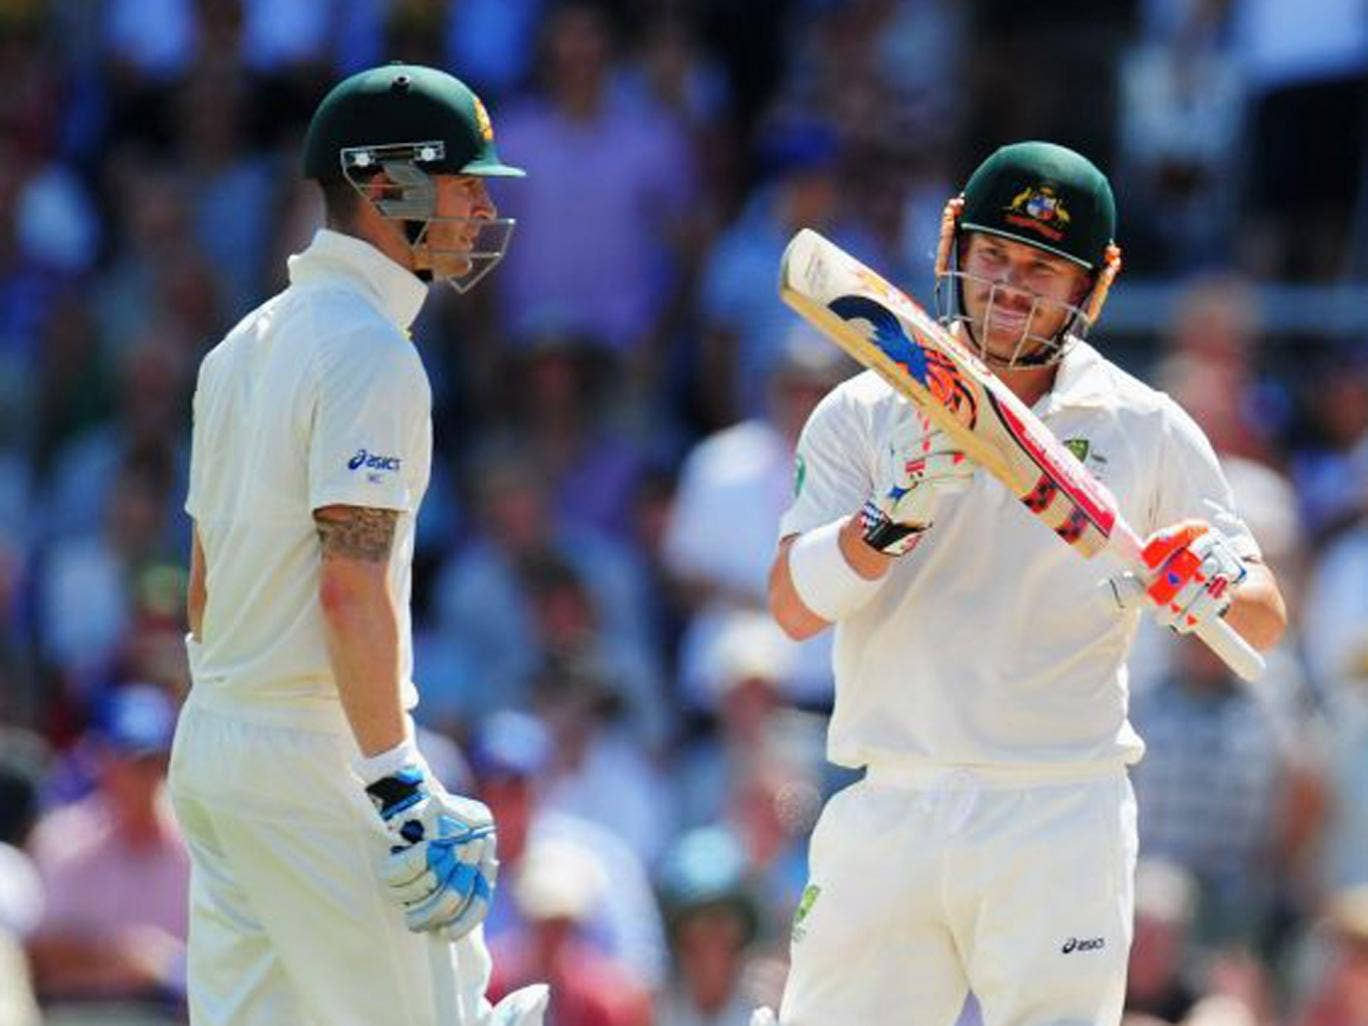 David Warner calls for a review after being caught yesterday